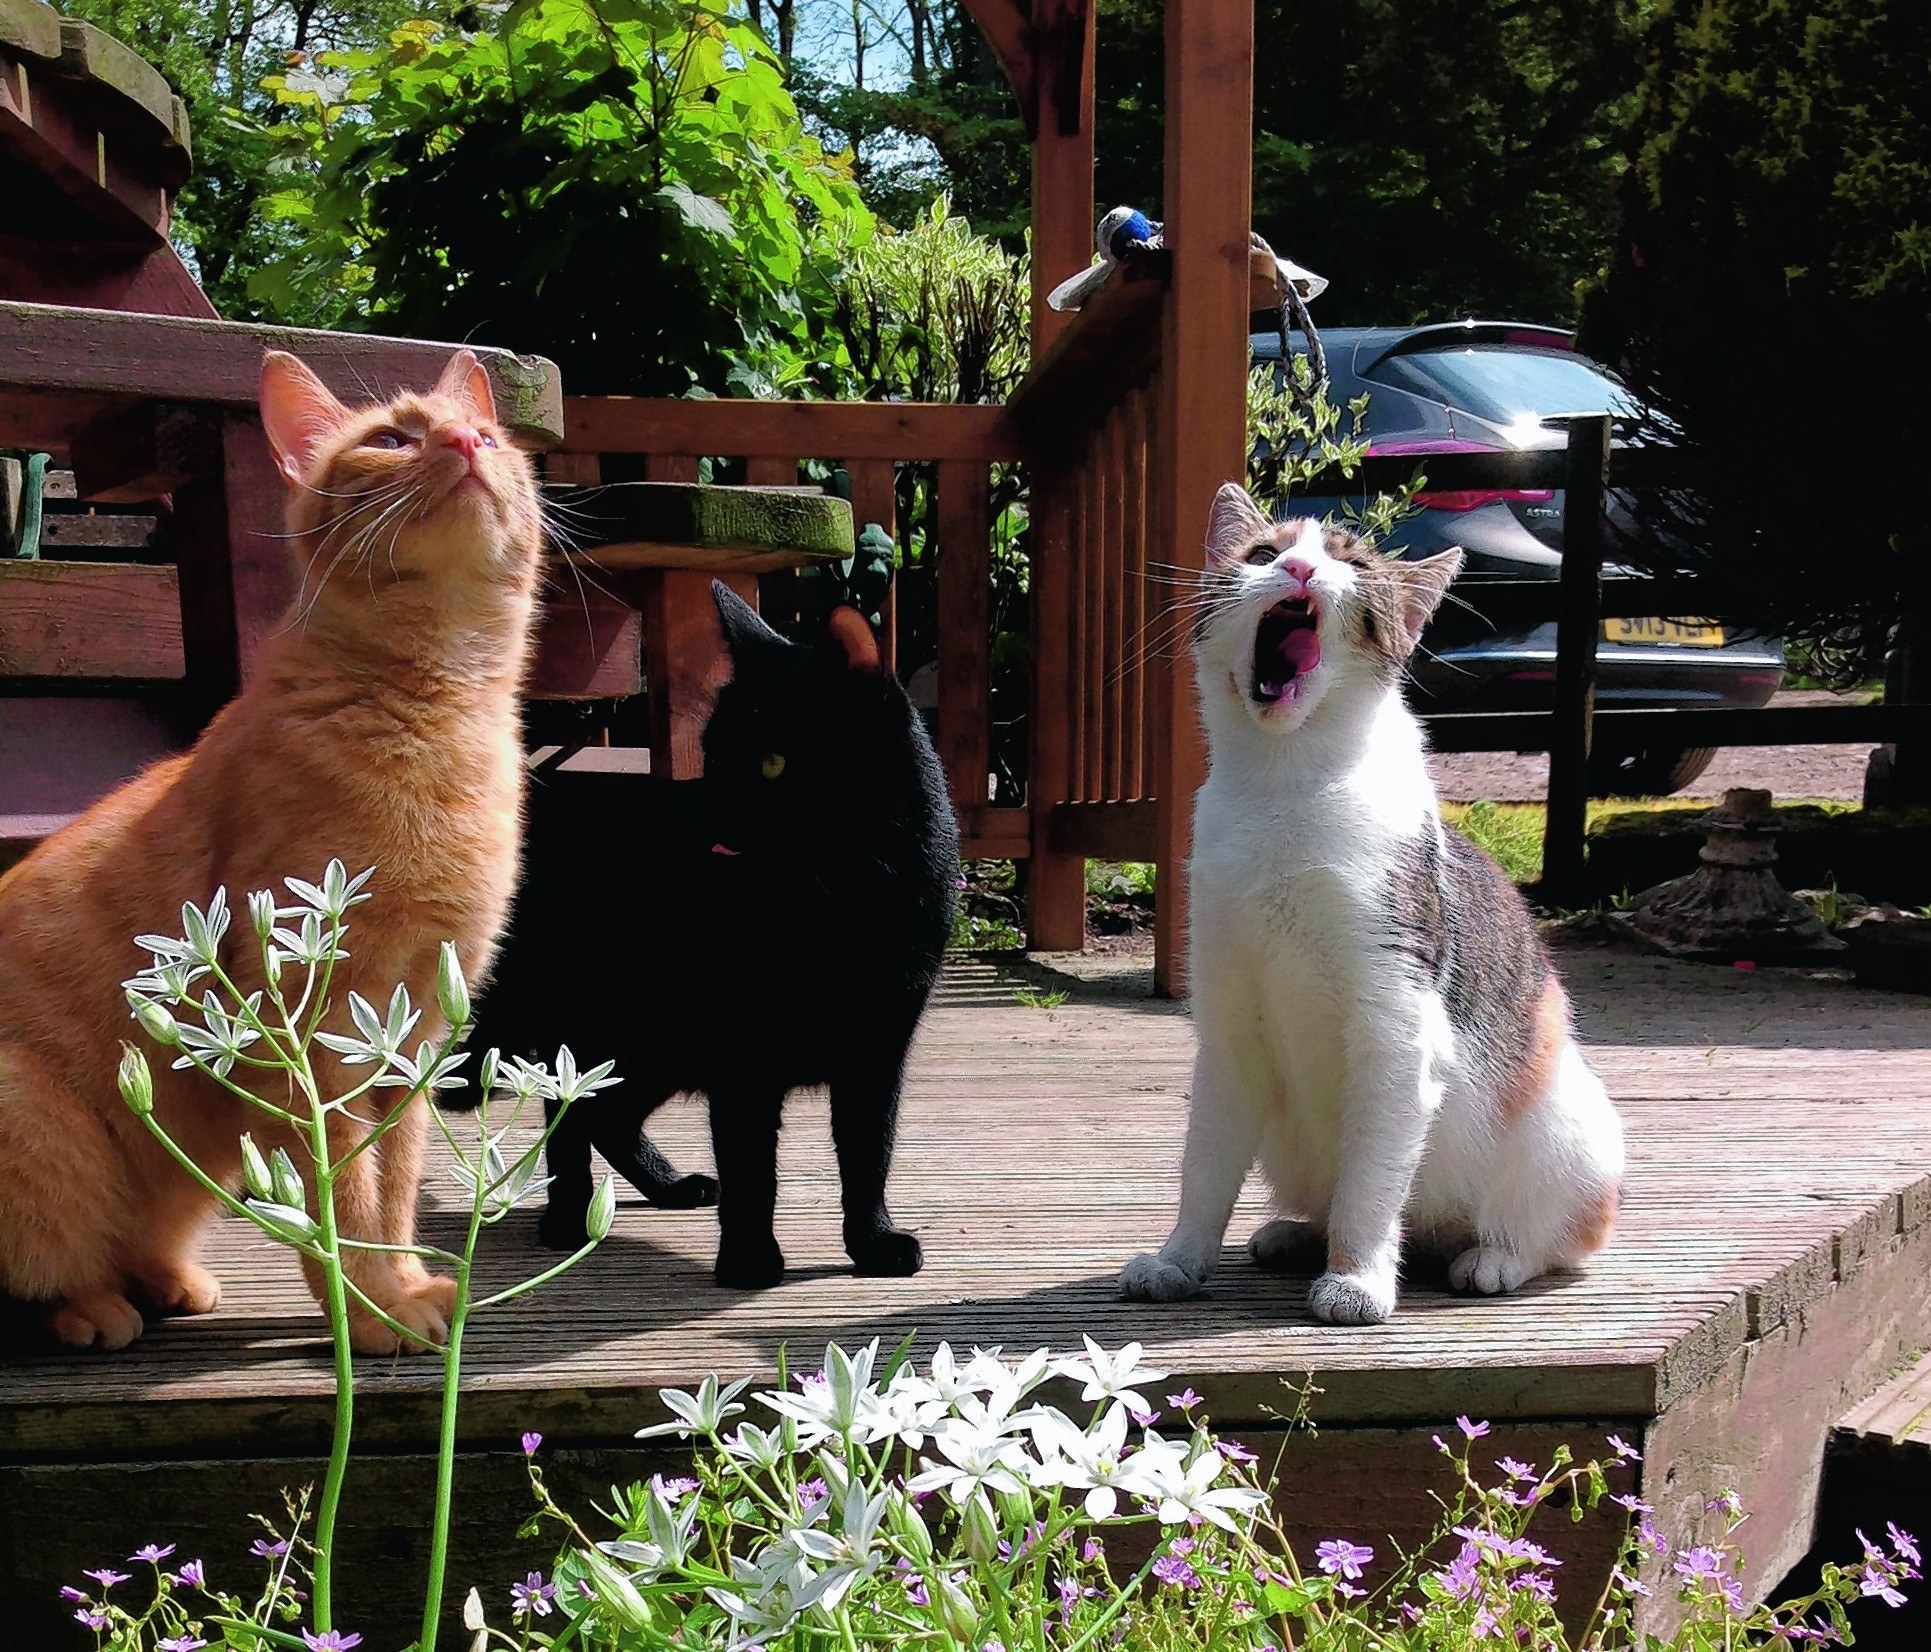 Wullie, Beanz and Mink have had a busy day gardening. They live at Craigievar with Zoe, Jimmy and Ali.